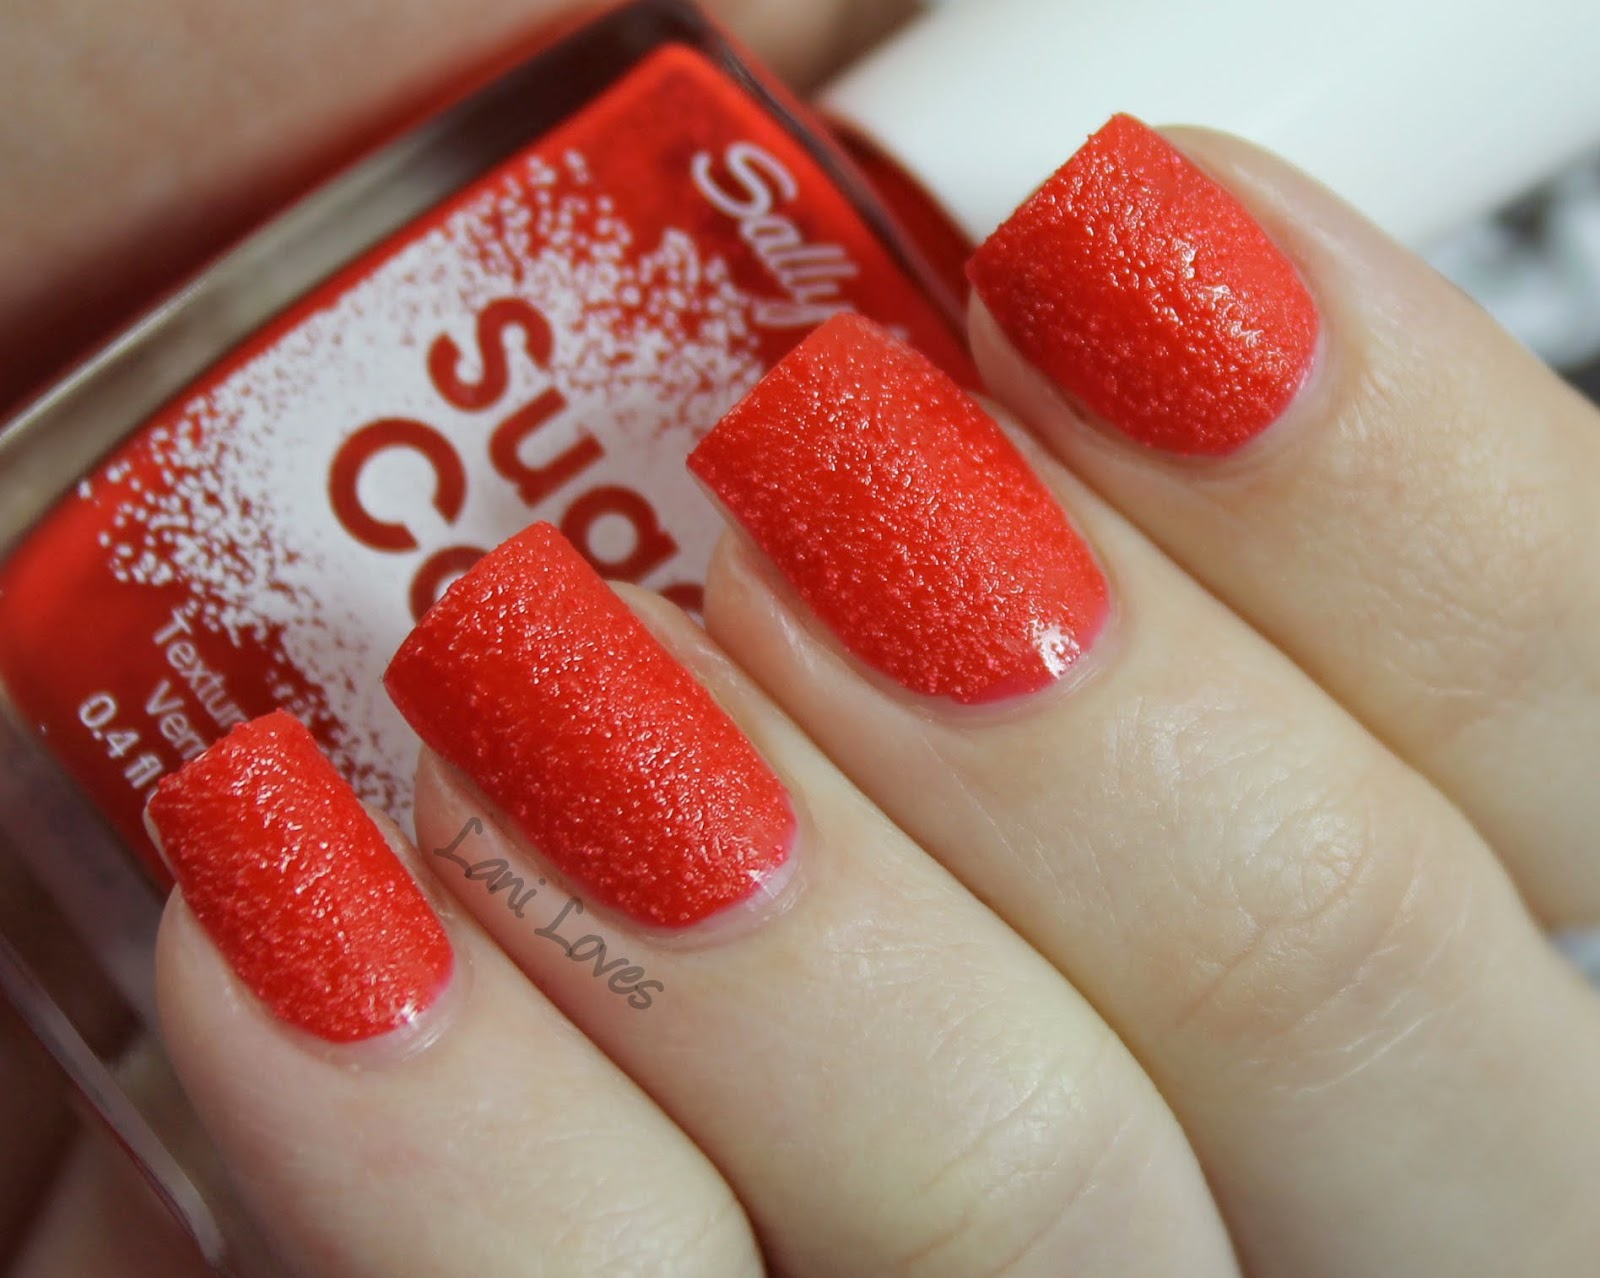 Sally Hansen Sugar Coat Cherry Drop Swatch